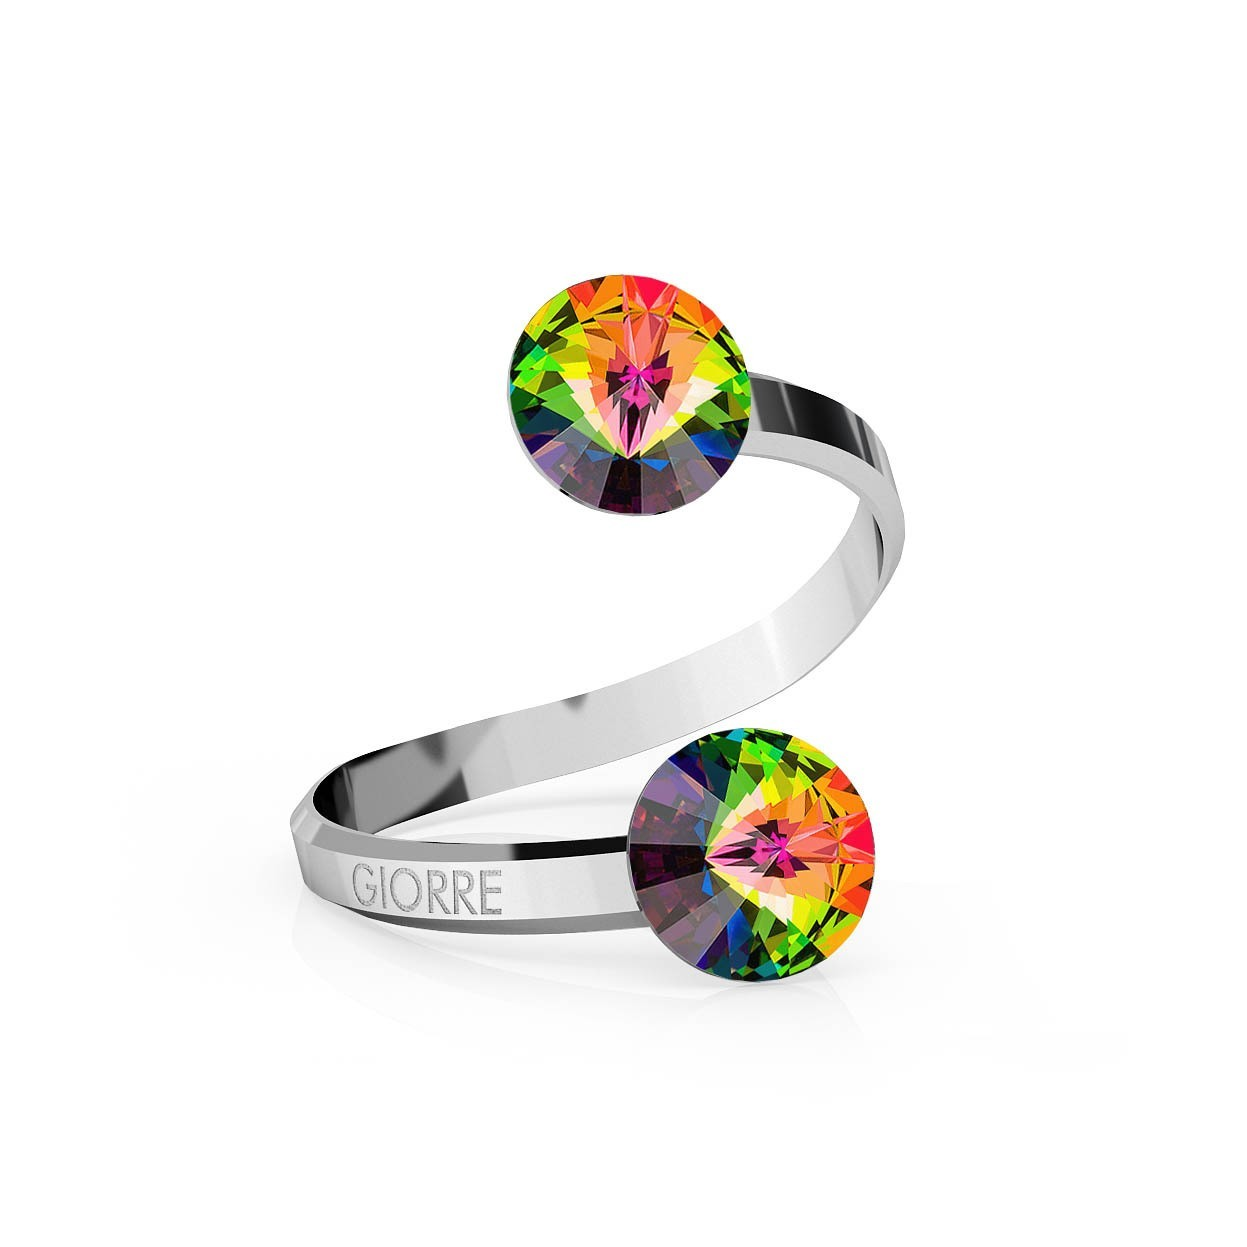 RIVOLI RING WITH 2 STONES 8MM, SWAROVSKI